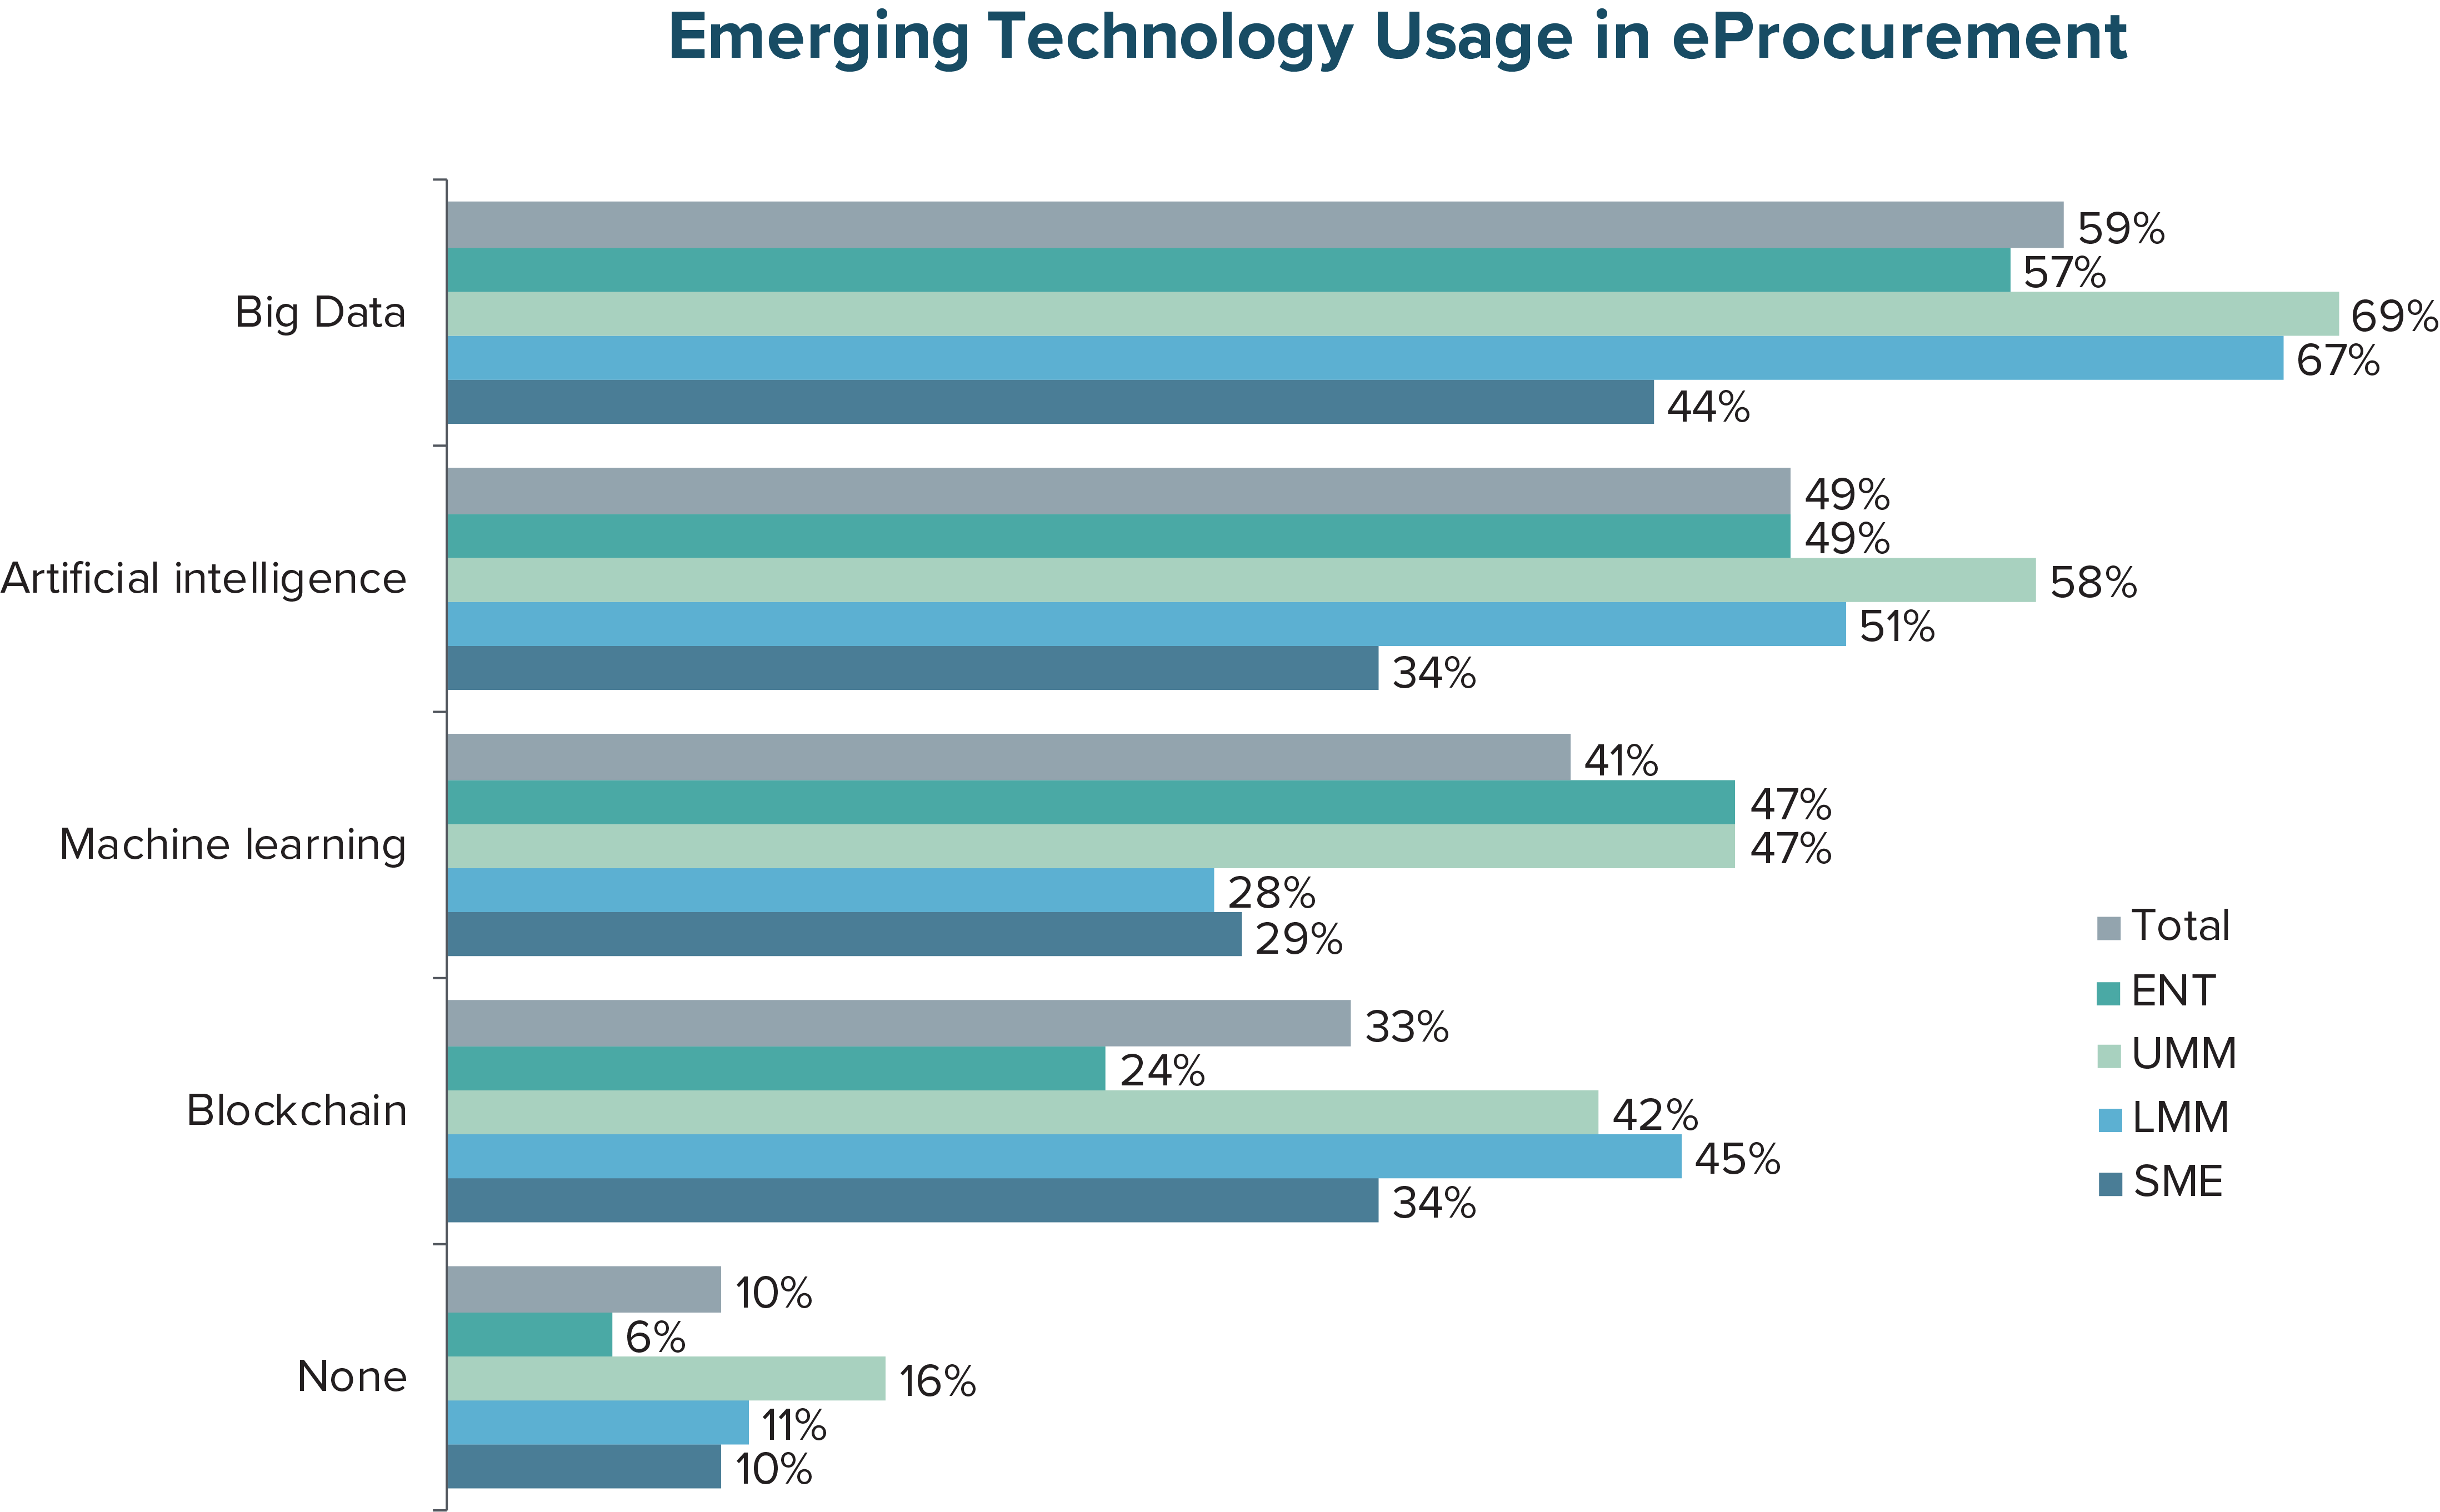 Emerging Technology Usage in eProcurement